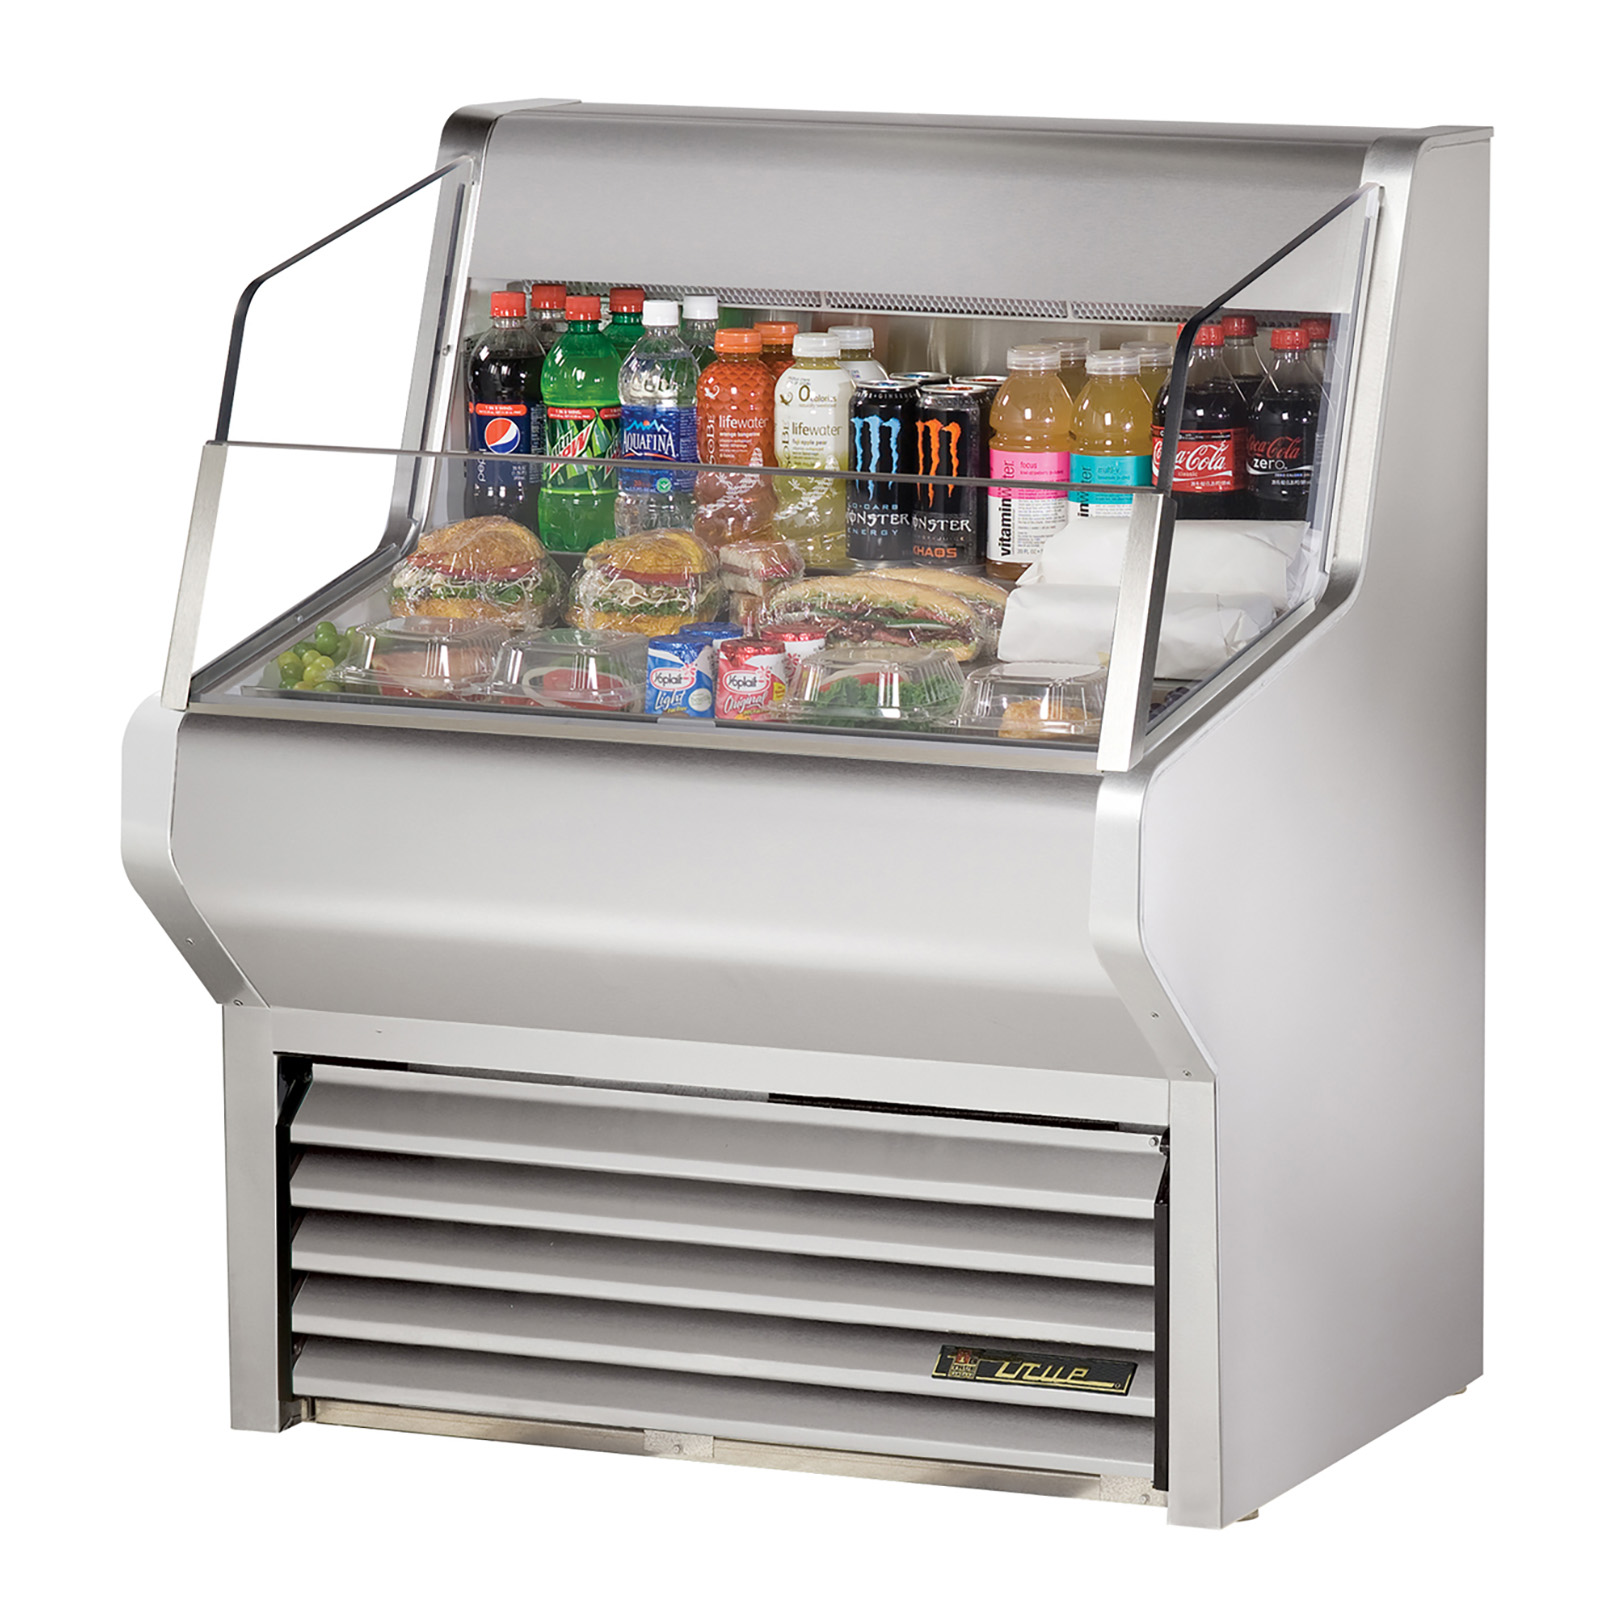 THAC-36-S True - Horizontal Air Curtain Merchandiser 36